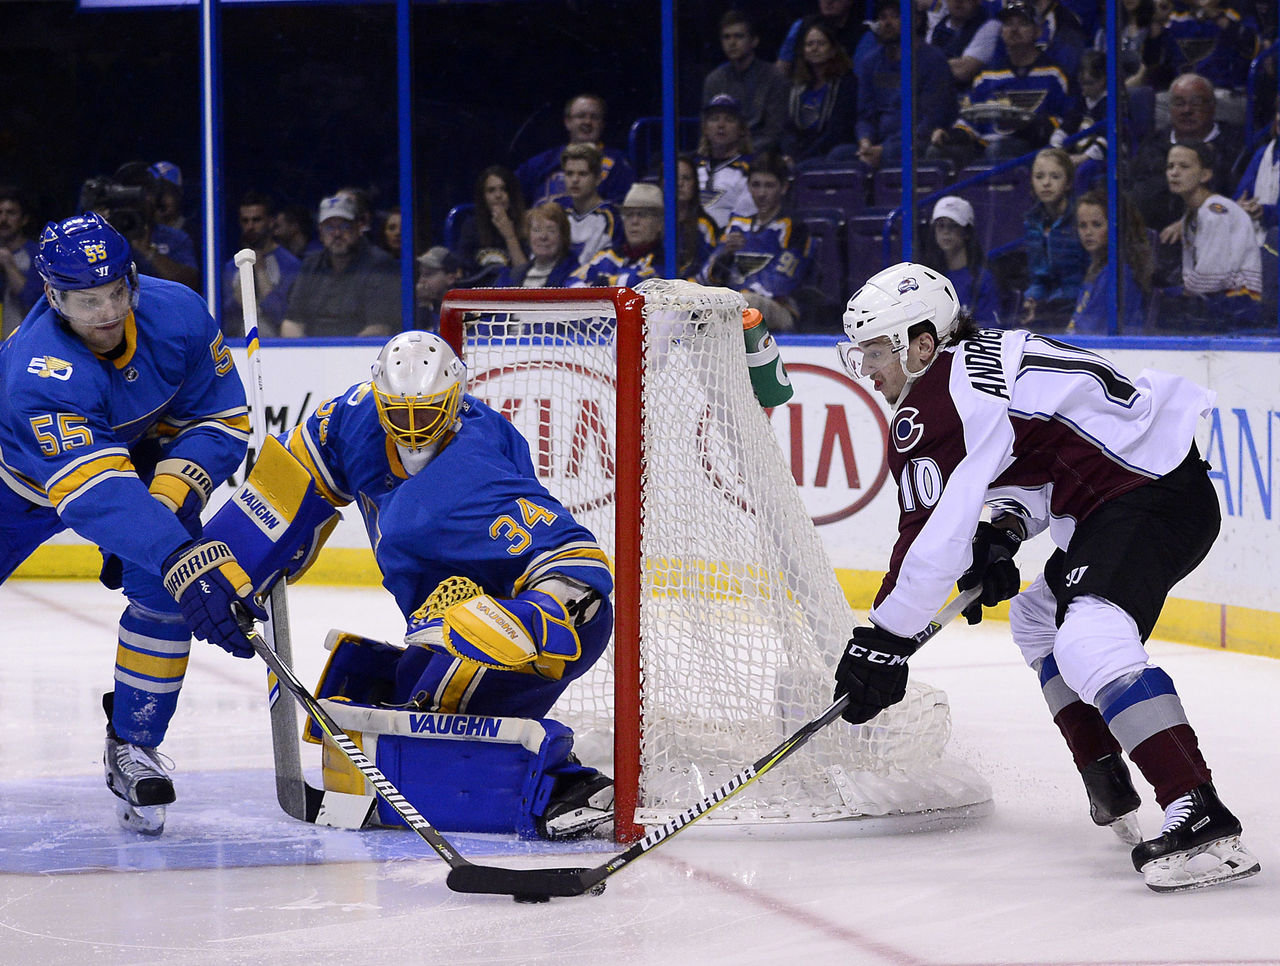 Cropped 2017 04 09t230531z 97042815 nocid rtrmadp 3 nhl colorado avalanche at st louis blues